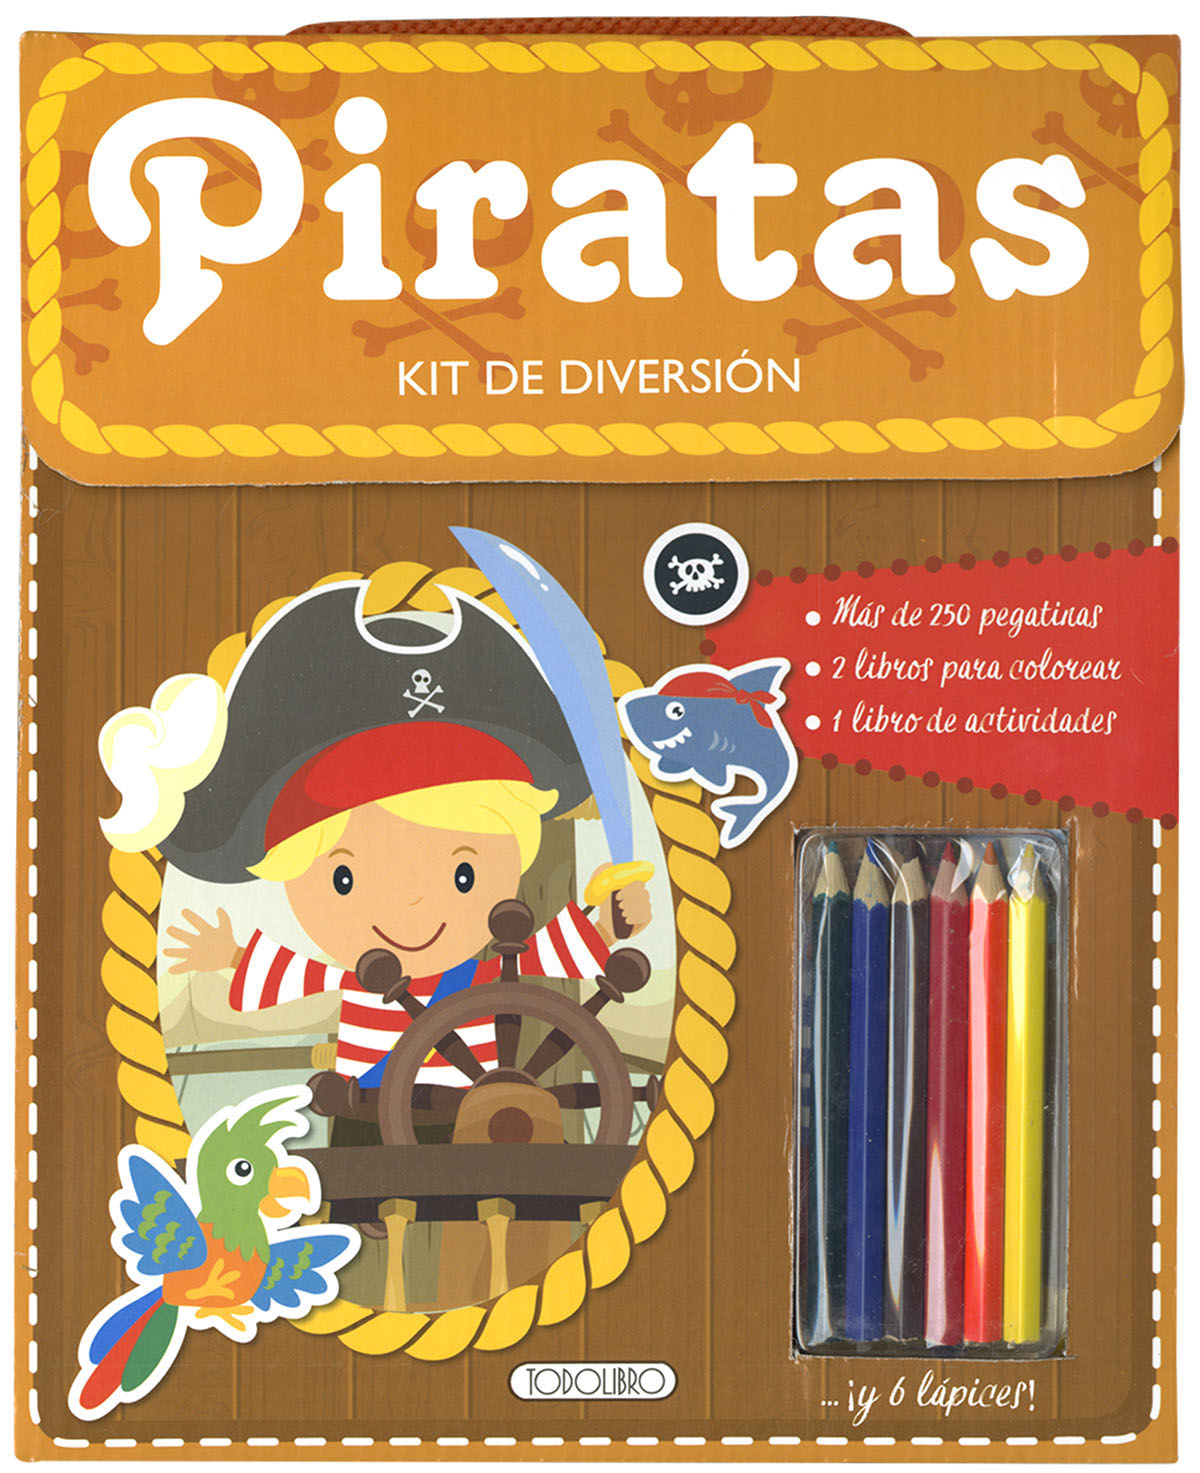 PIRATAS KIT DE DIVERSION